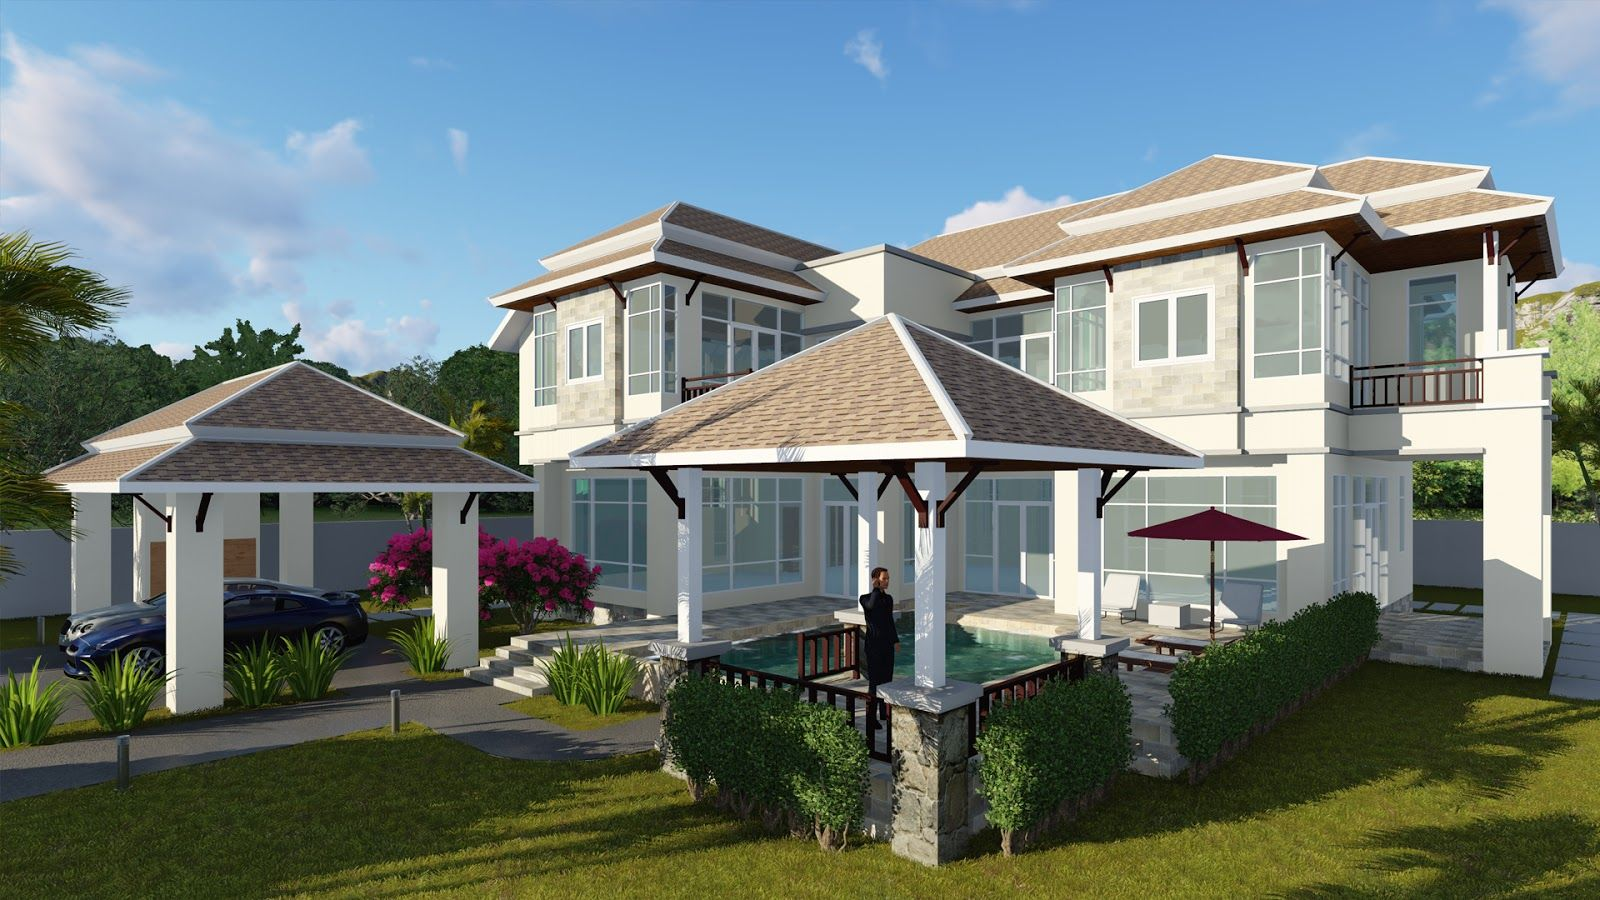 Villa Design 4 Bedroom House Size 15,7x16,2m Sketchup Lumion Autocad